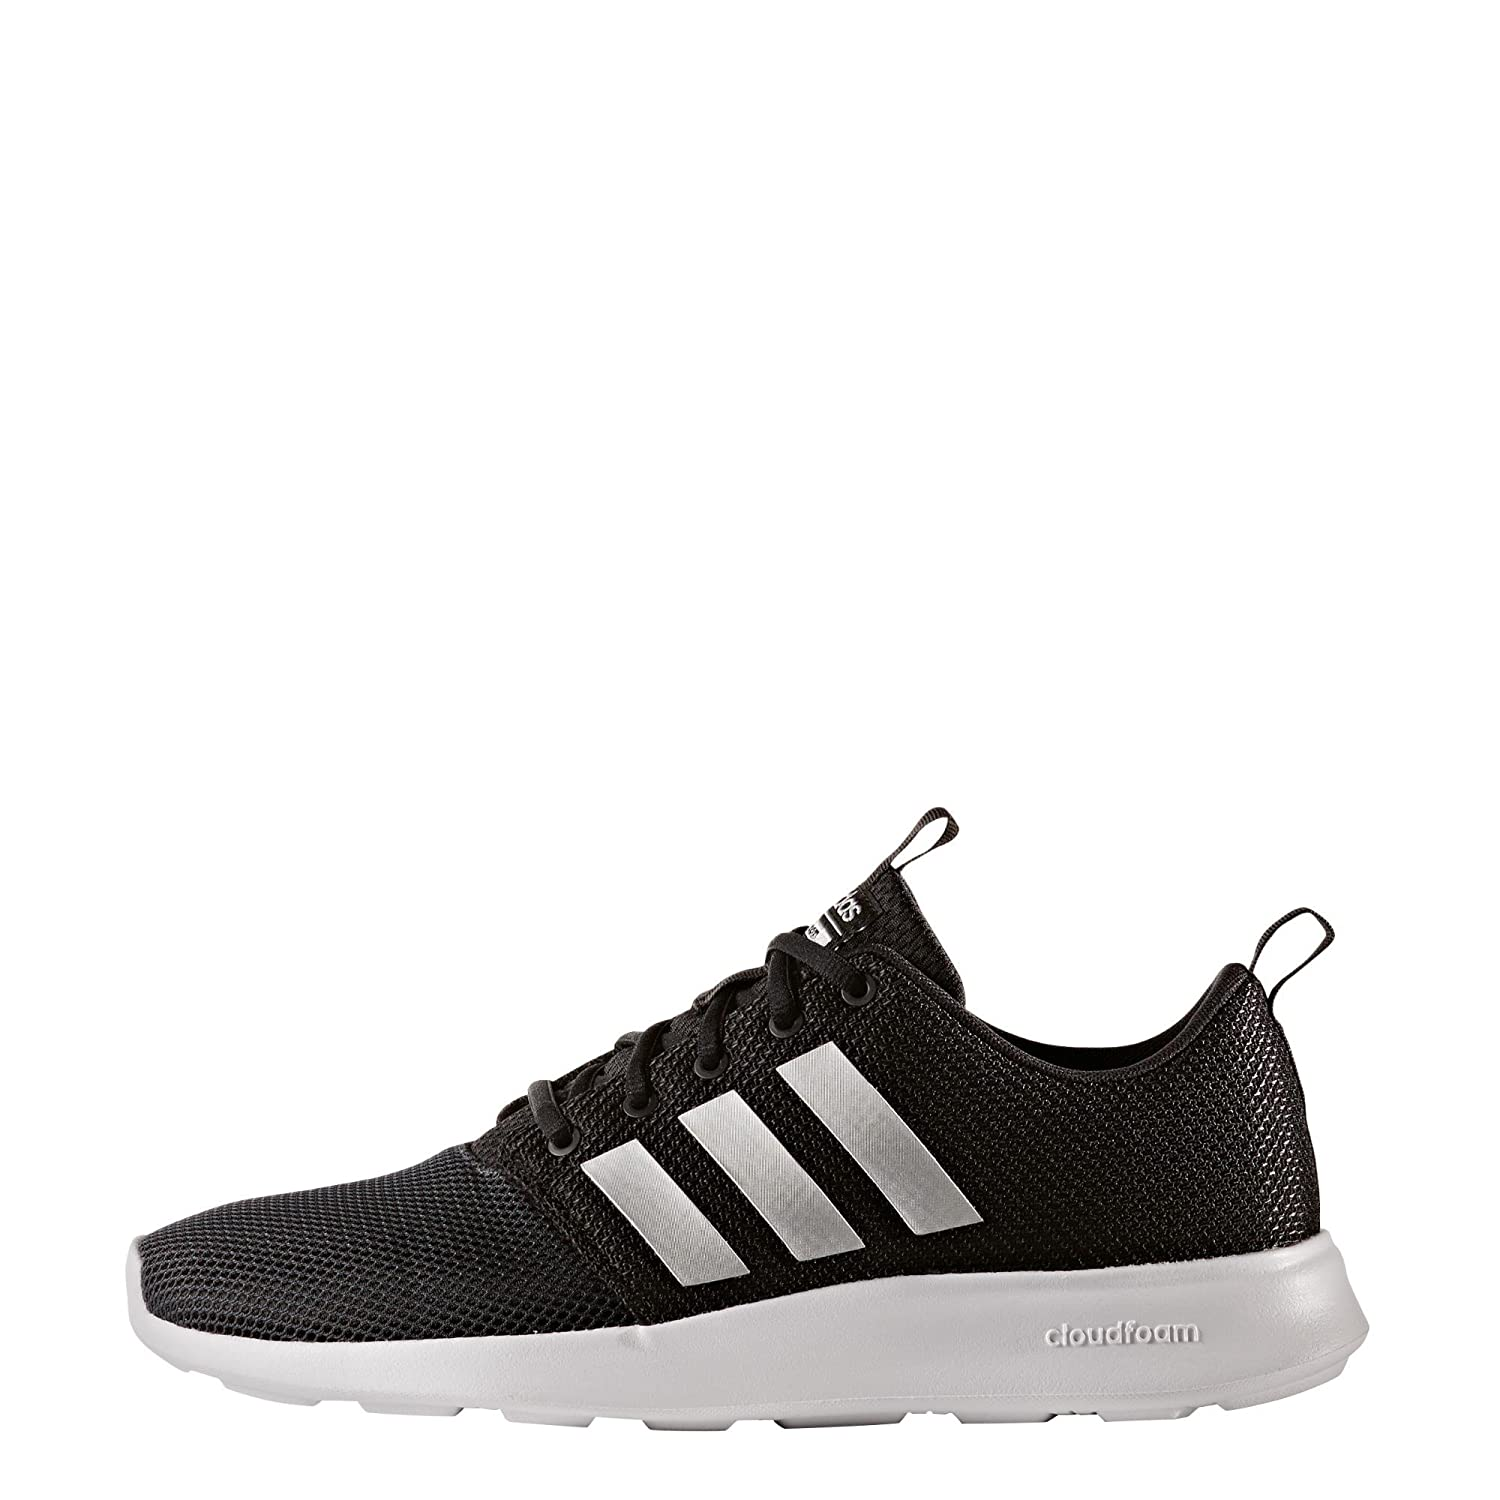 adidas Neo Cloud Foam Swift Racer Zapatillas Zapatos aw4154, Color, Talla 6.5